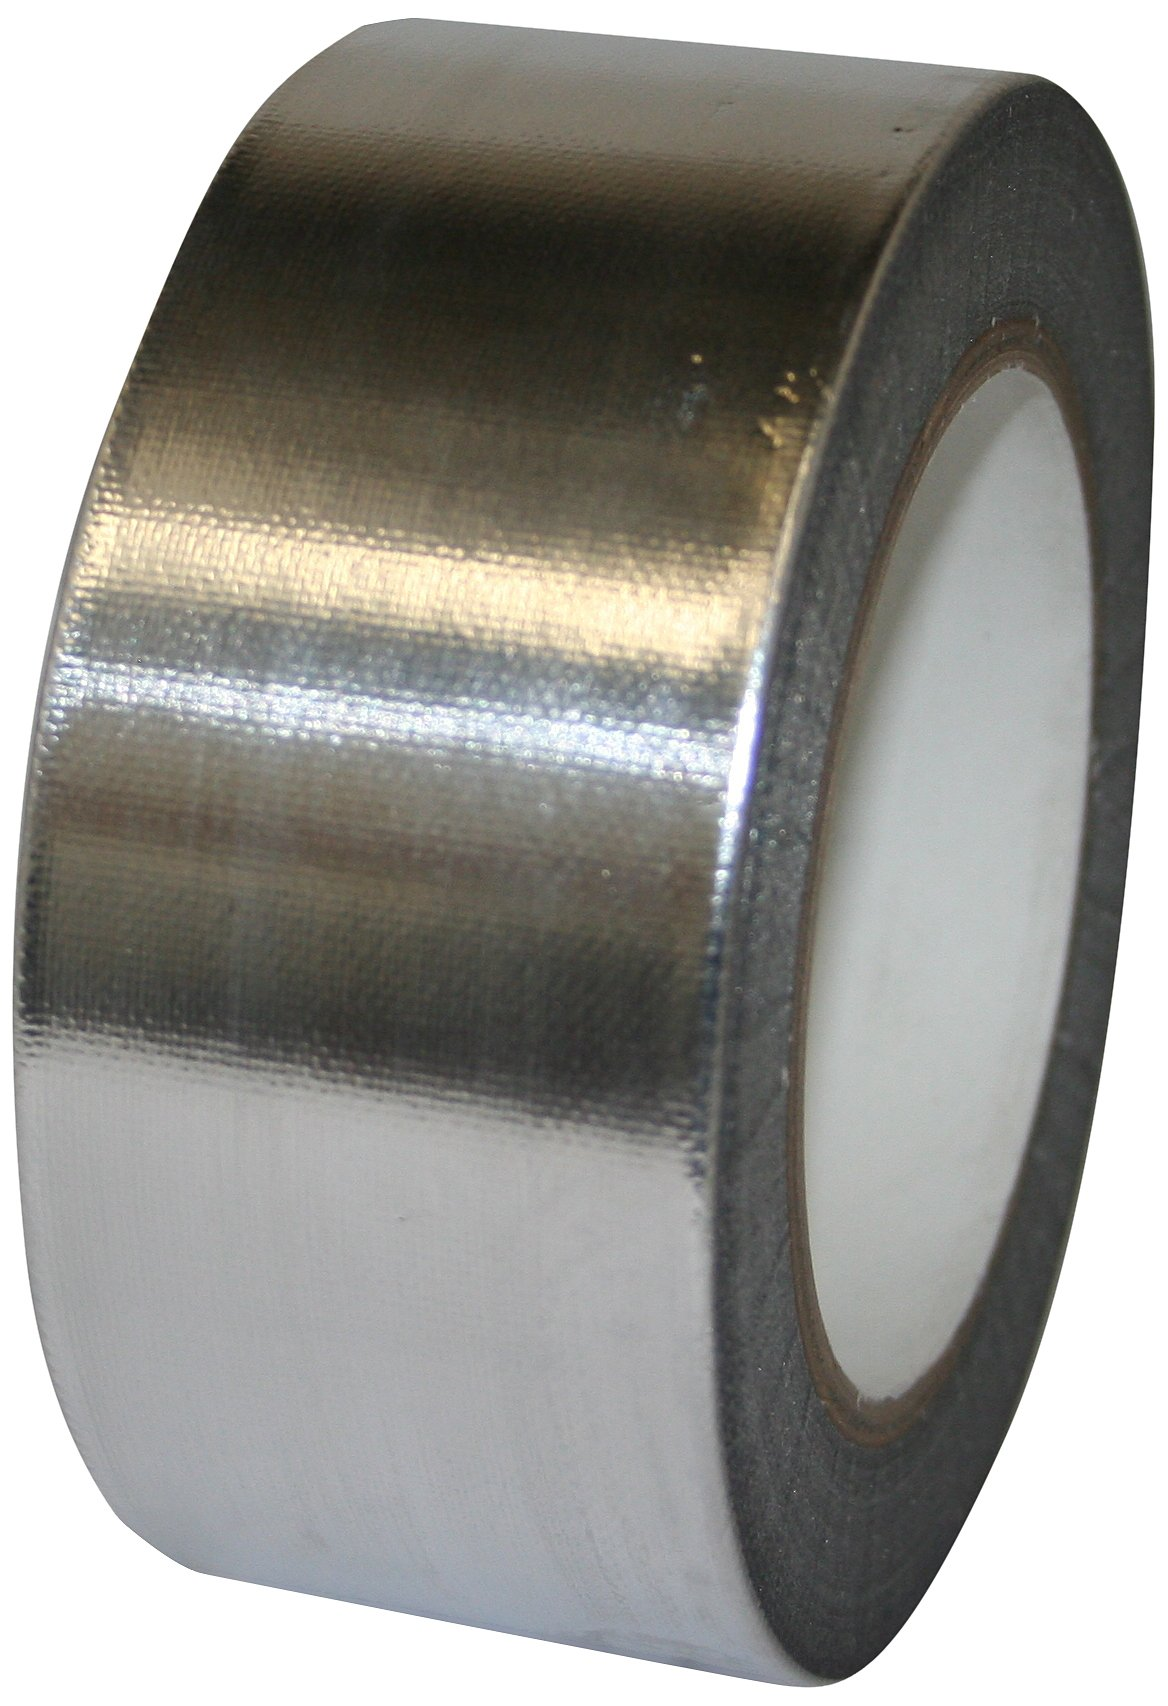 Maxi 1956ALG Aluminum Foil Heavy Duty HVOF Tape with Silicone Adhesive, 6.6 mil Thick, 36 yds Length, 1/2'' Width, Silver